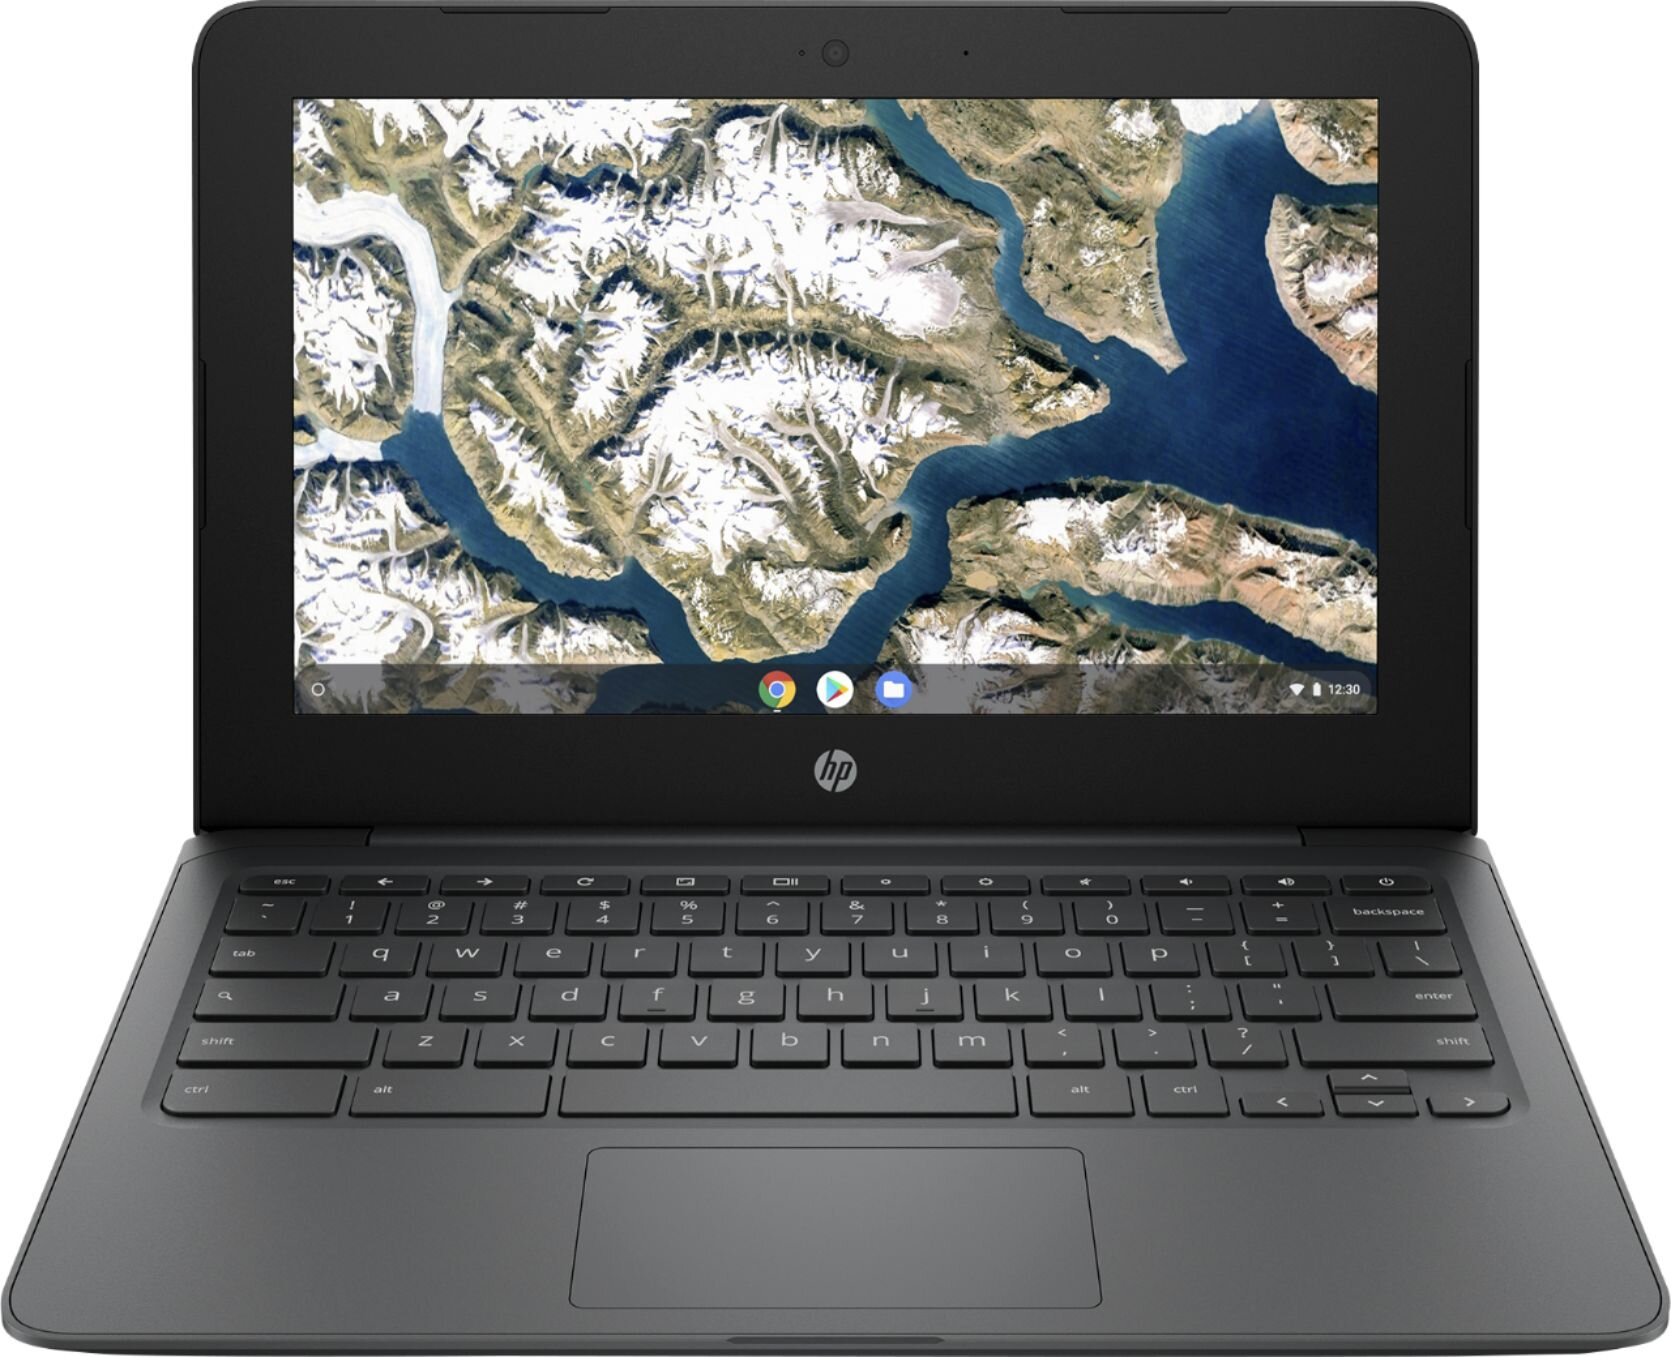 "HP - 11.6"" Chromebook - Intel Celeron - 4GB Memory - 32GB eMMC Flash Memory - Ash Gray (11A-NB0013DX)"